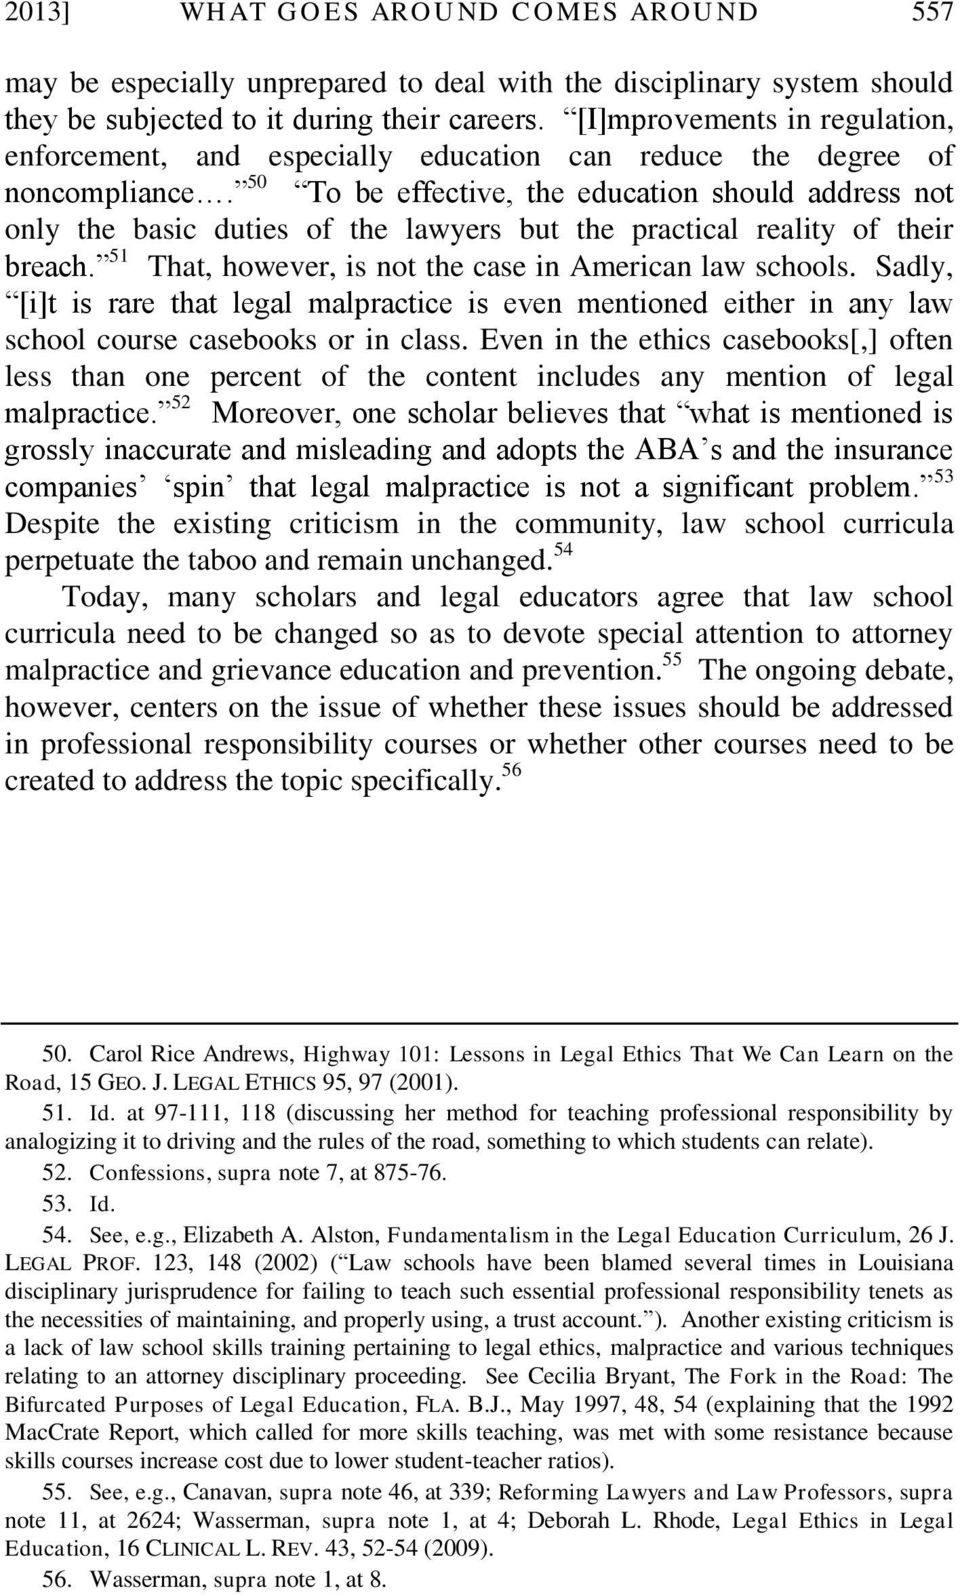 50 To be effective, the education should address not only the basic duties of the lawyers but the practical reality of their breach. 51 That, however, is not the case in American law schools.